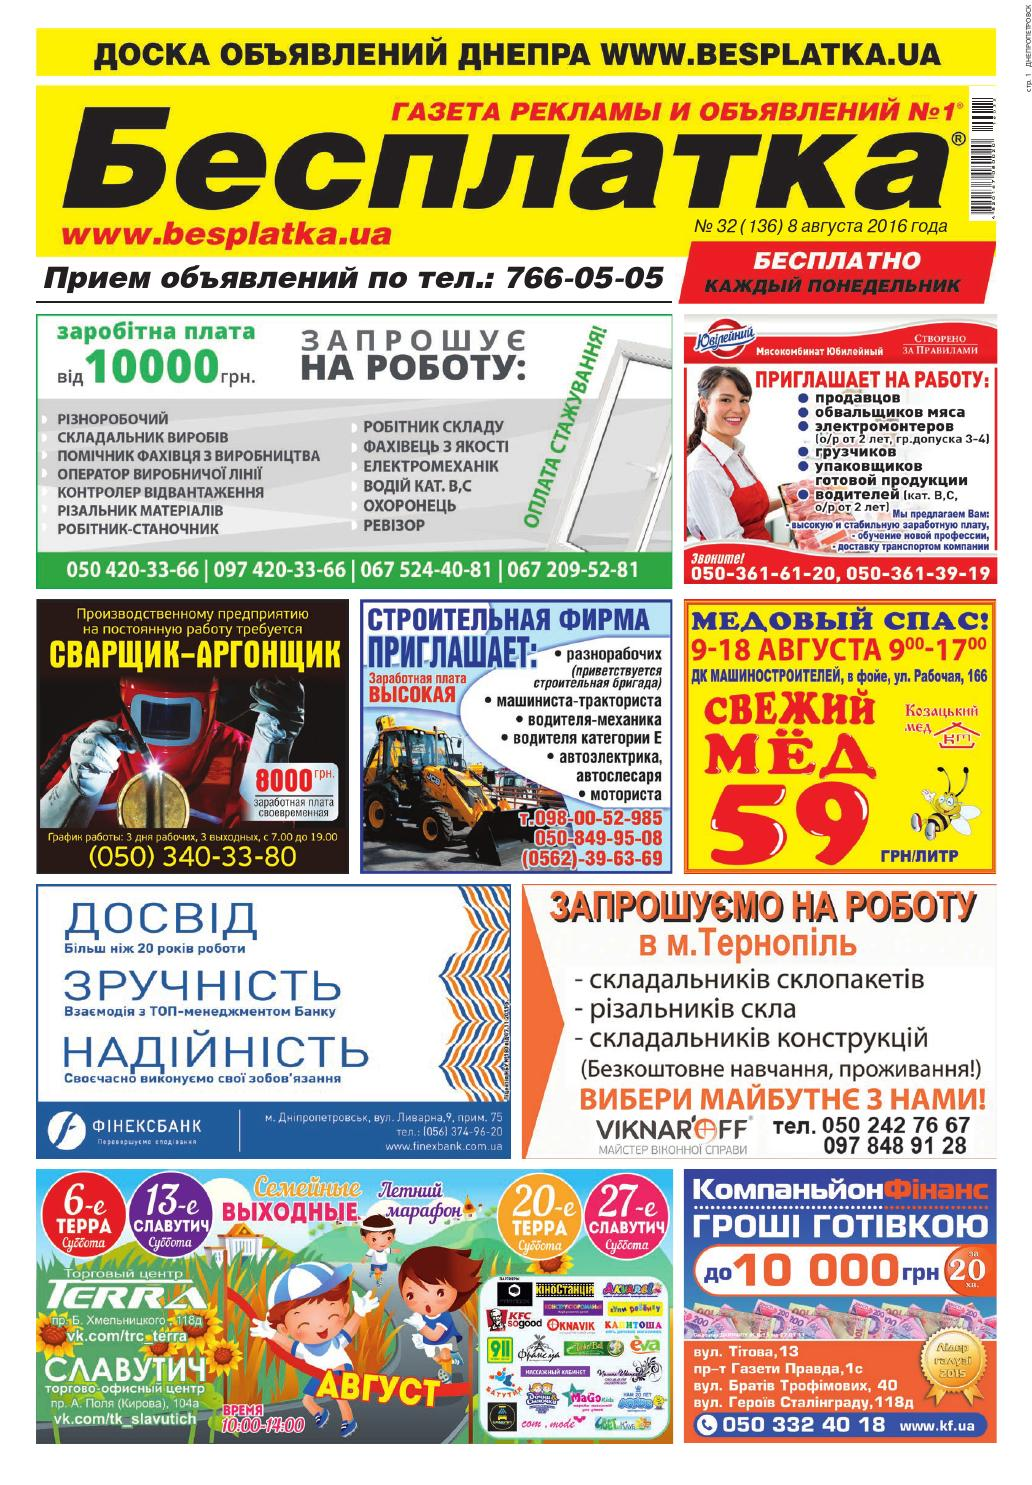 Besplatka  32 Днепр by besplatka ukraine - issuu db35e69cac1e6